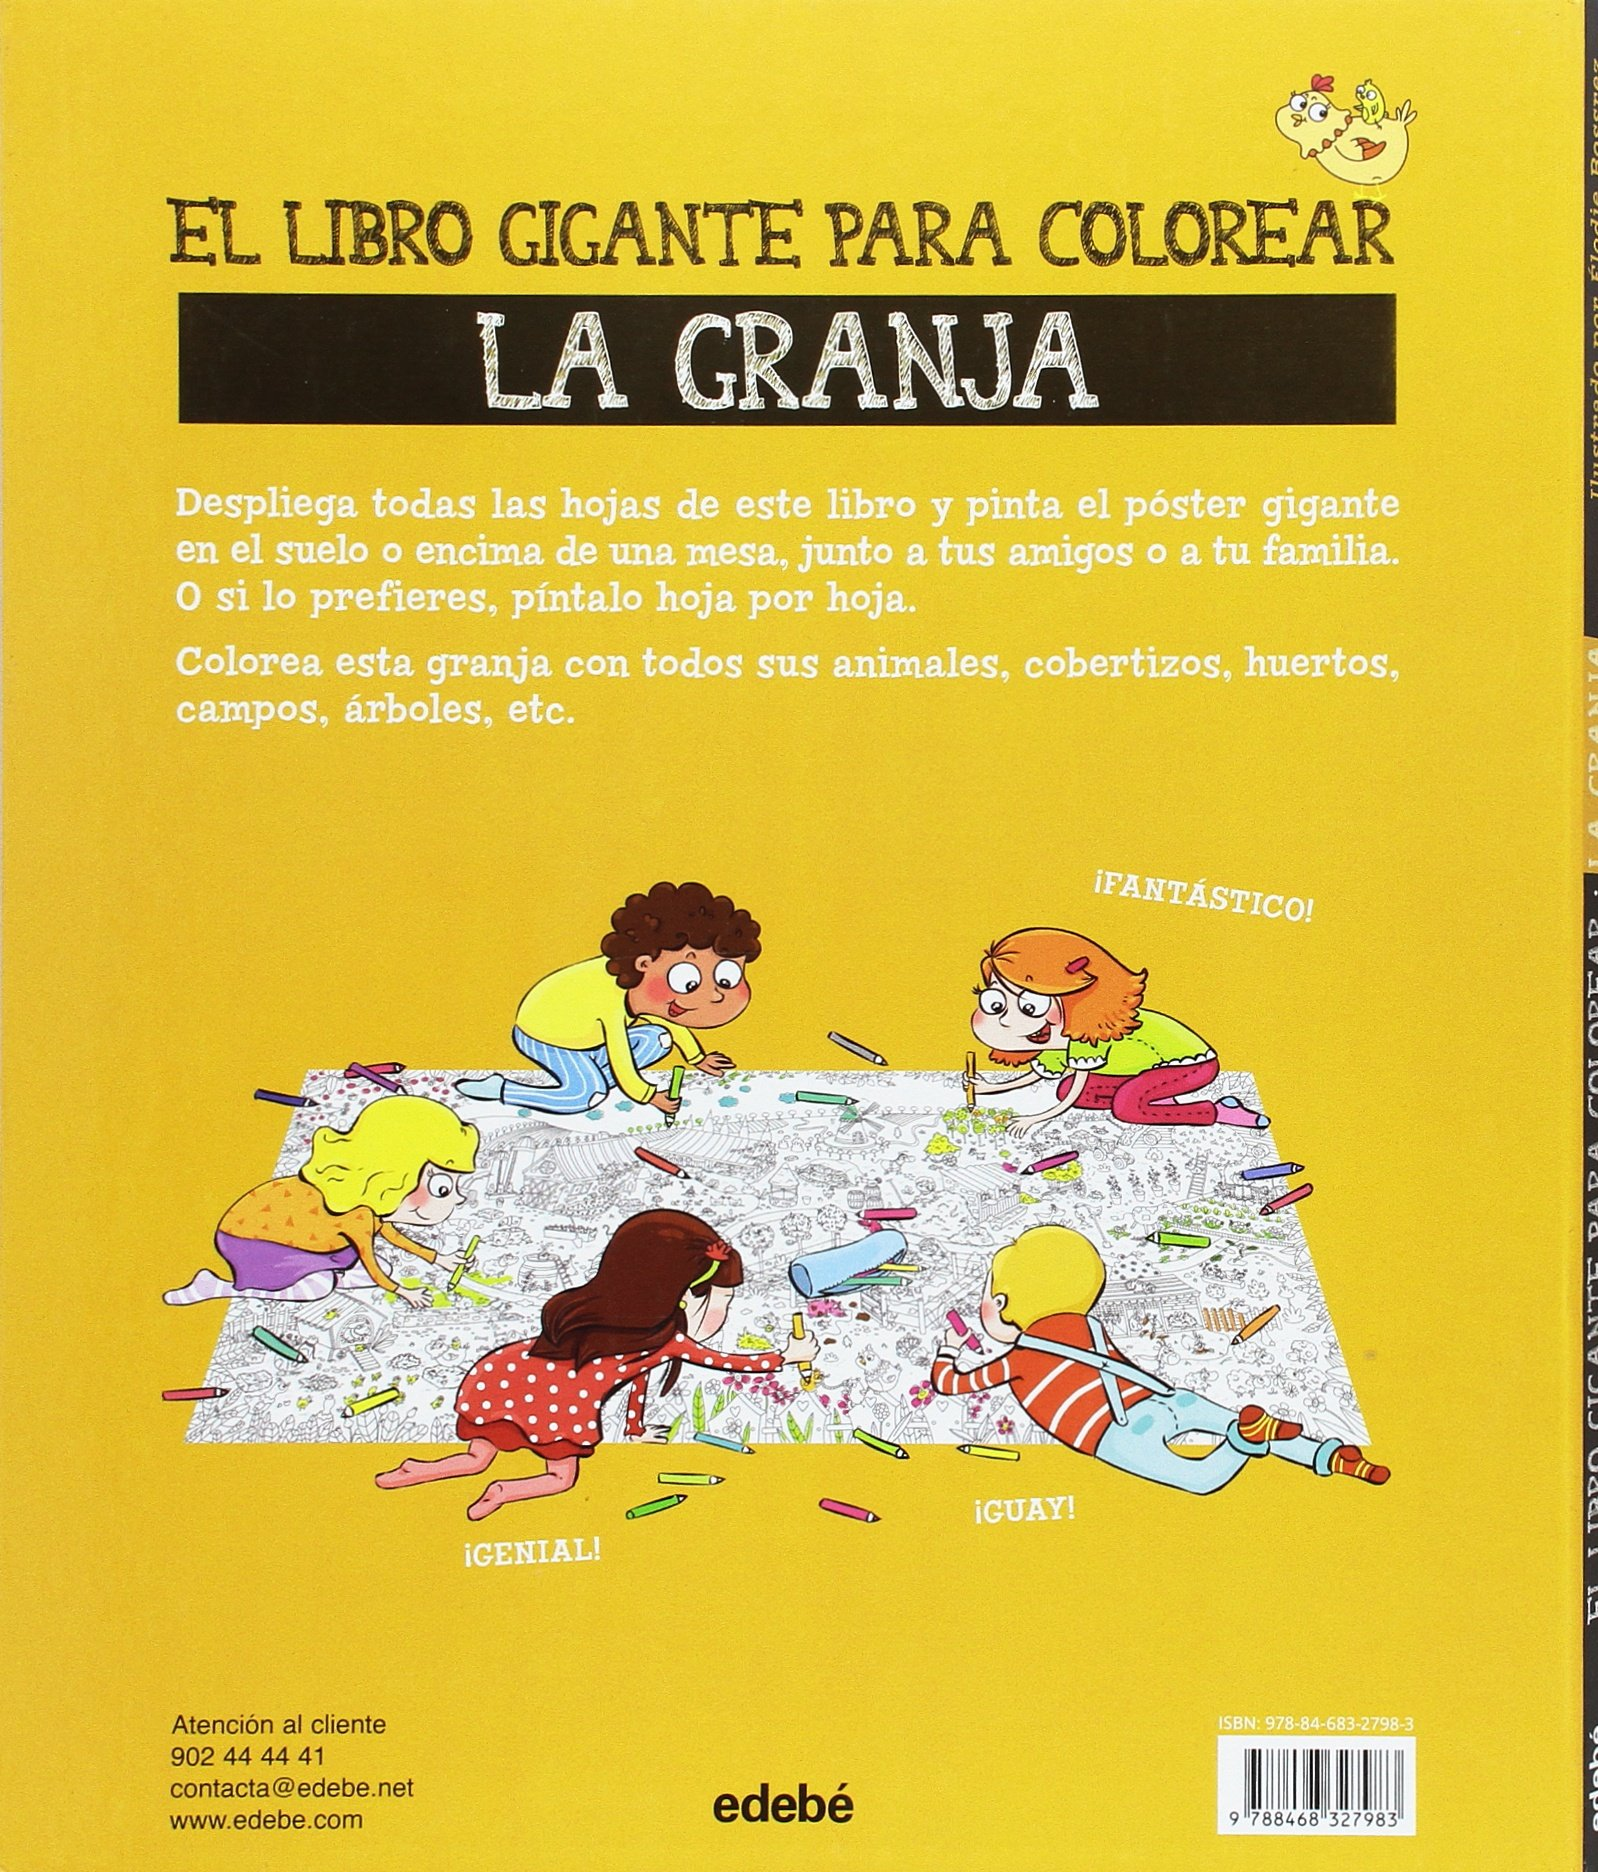 EL LIBRO GIGANTE PARA COLOREAR: la granja: RUSTIQUE EDITIO: 9788468327983: Amazon.com: Books